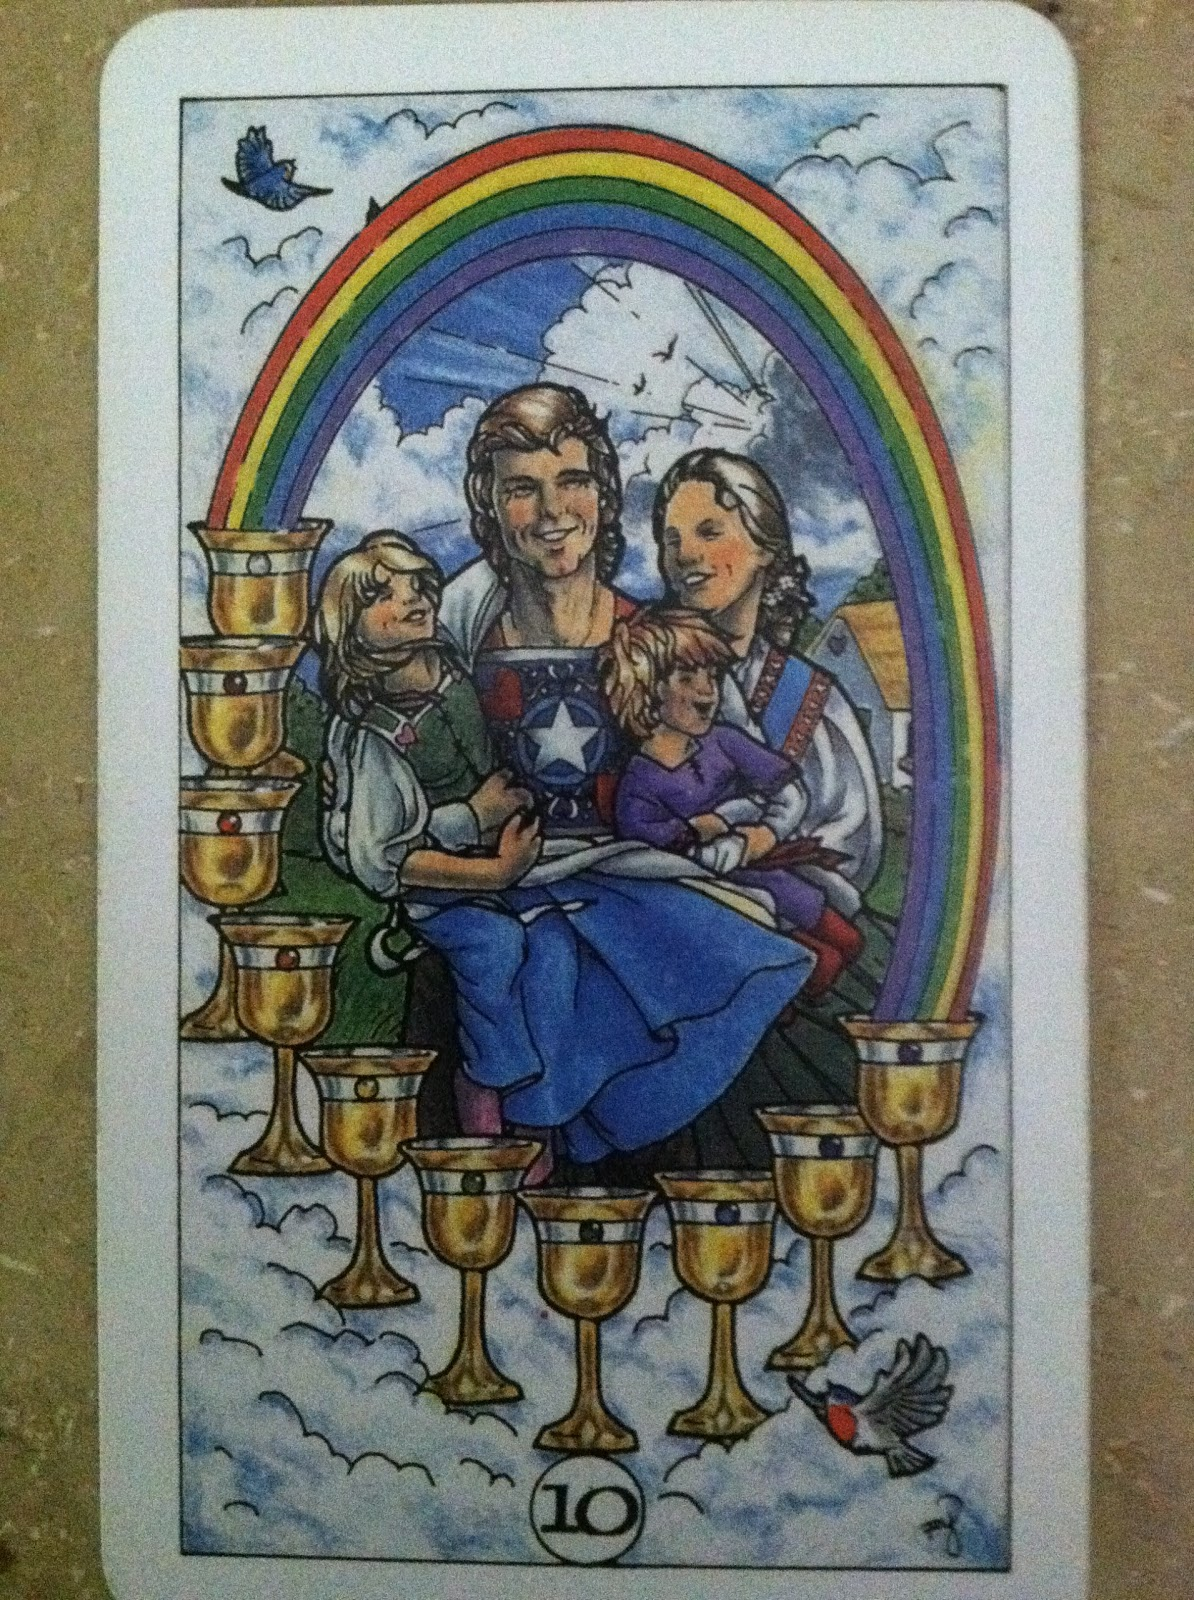 Turtlephoenix Tarot, Dreams, And Astrology: 10 Of Cups